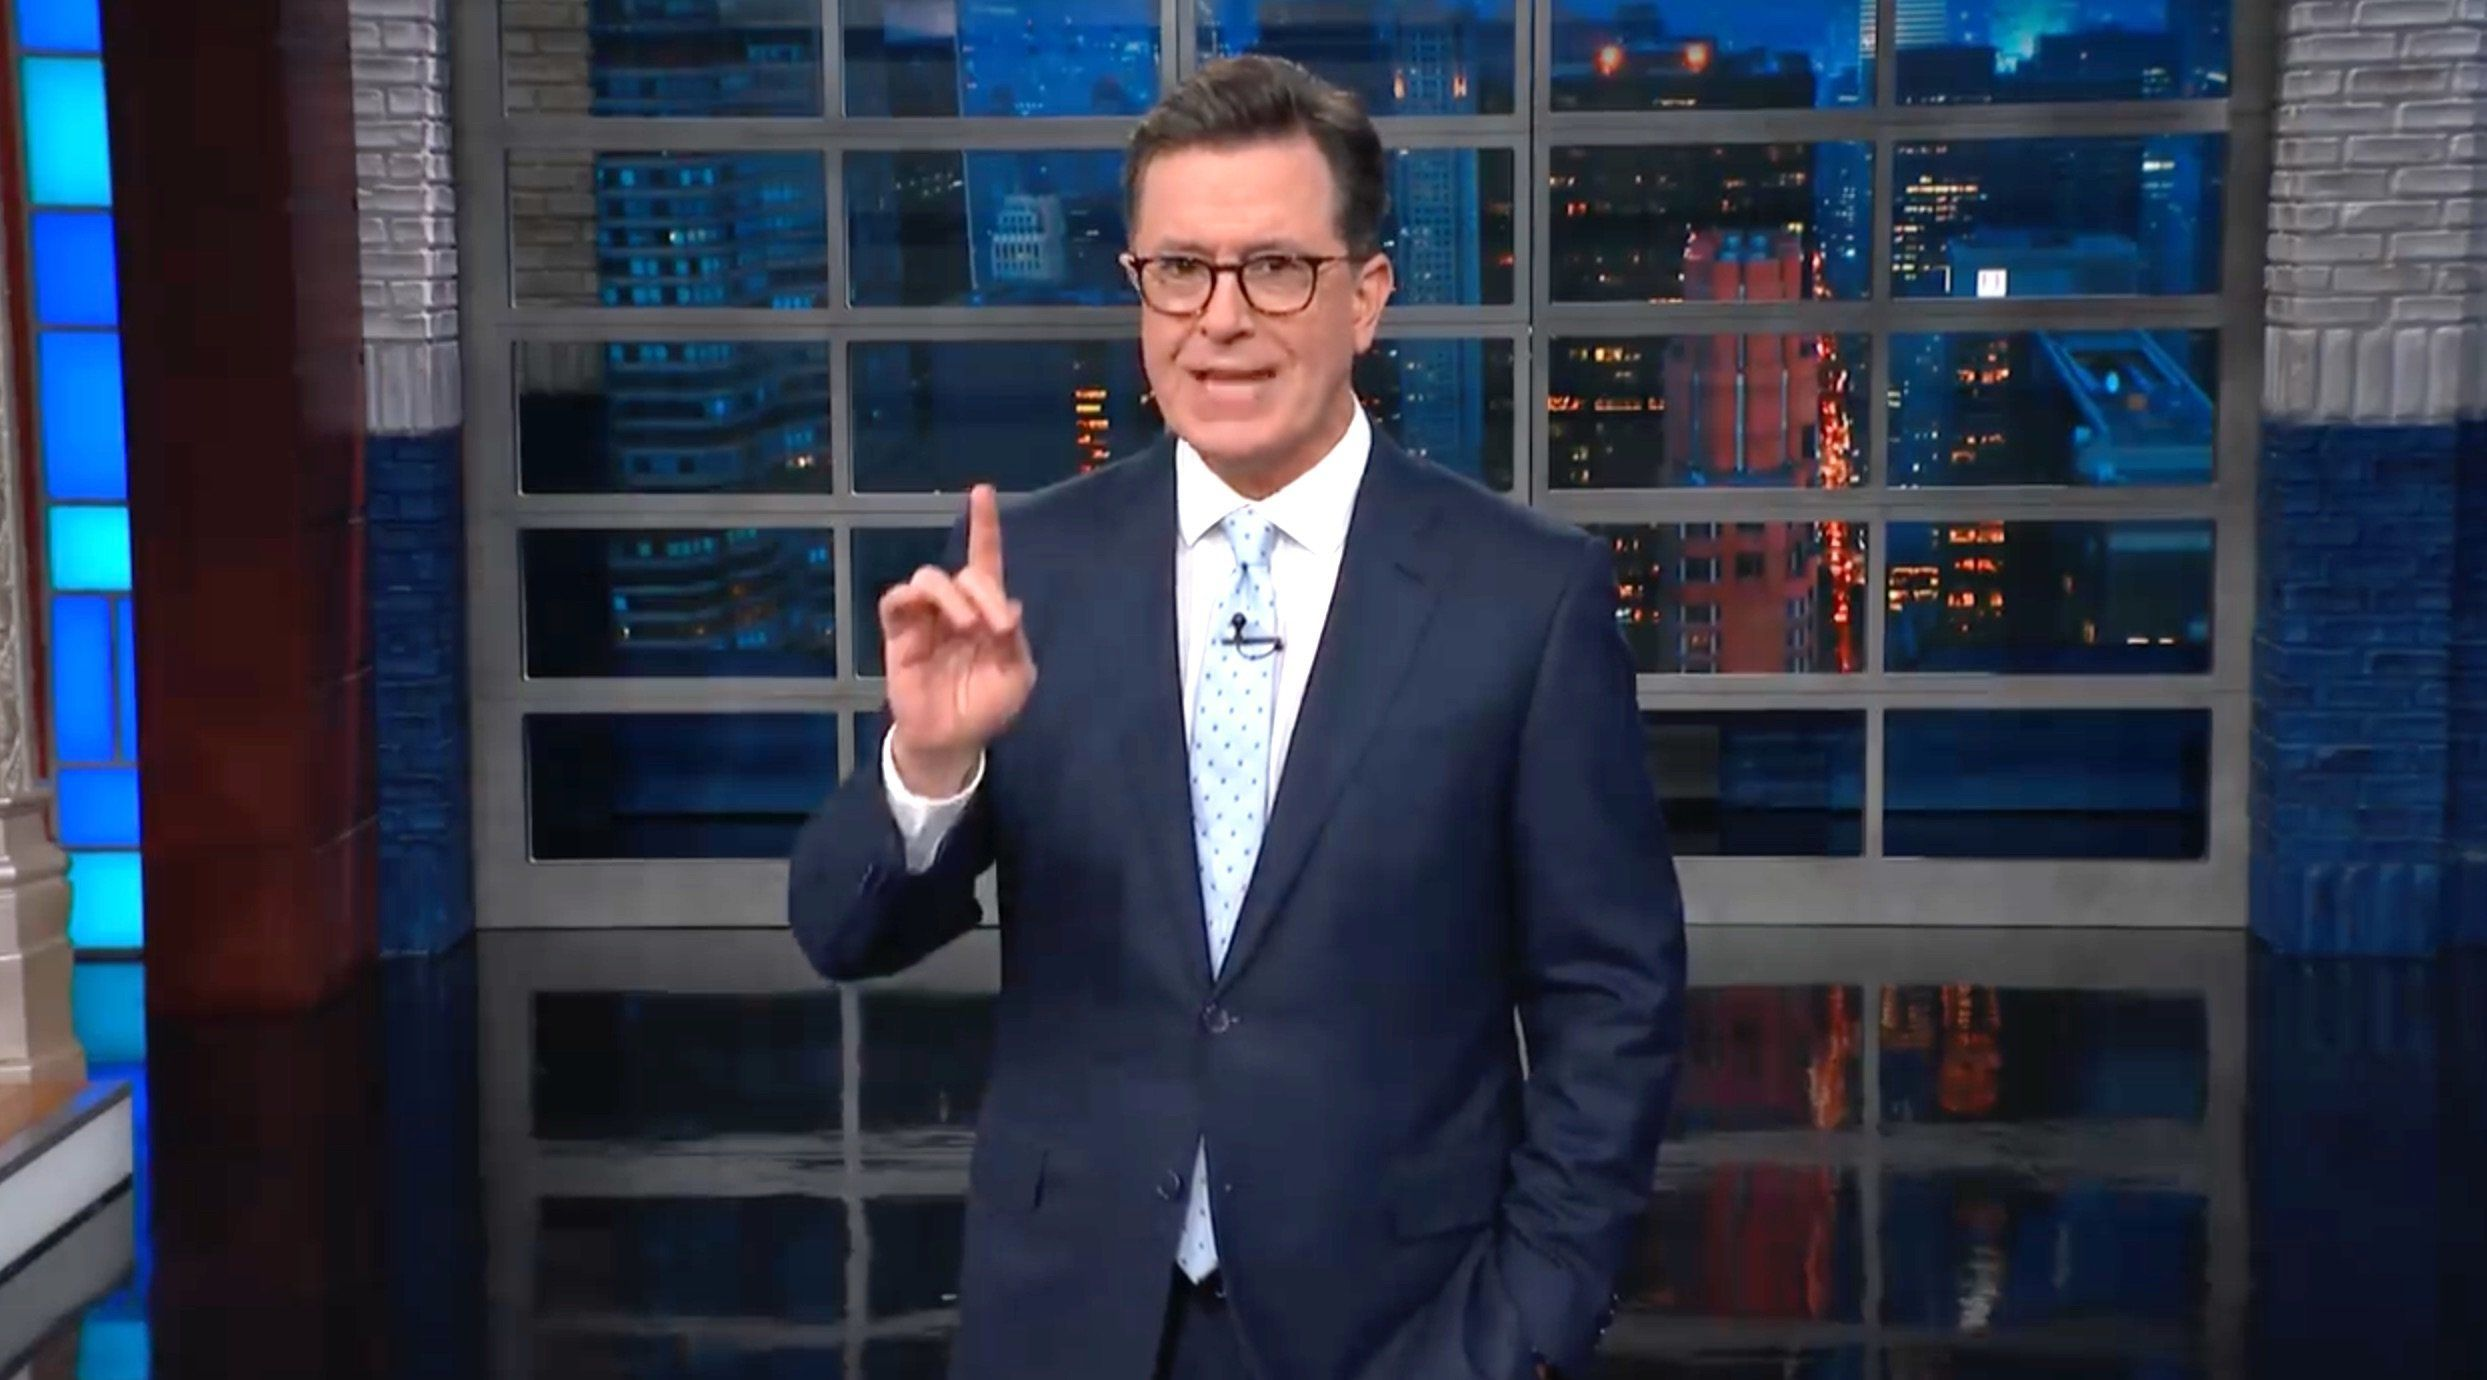 Colbert Sums Up Iconic New Trump Image: 'Still Life With